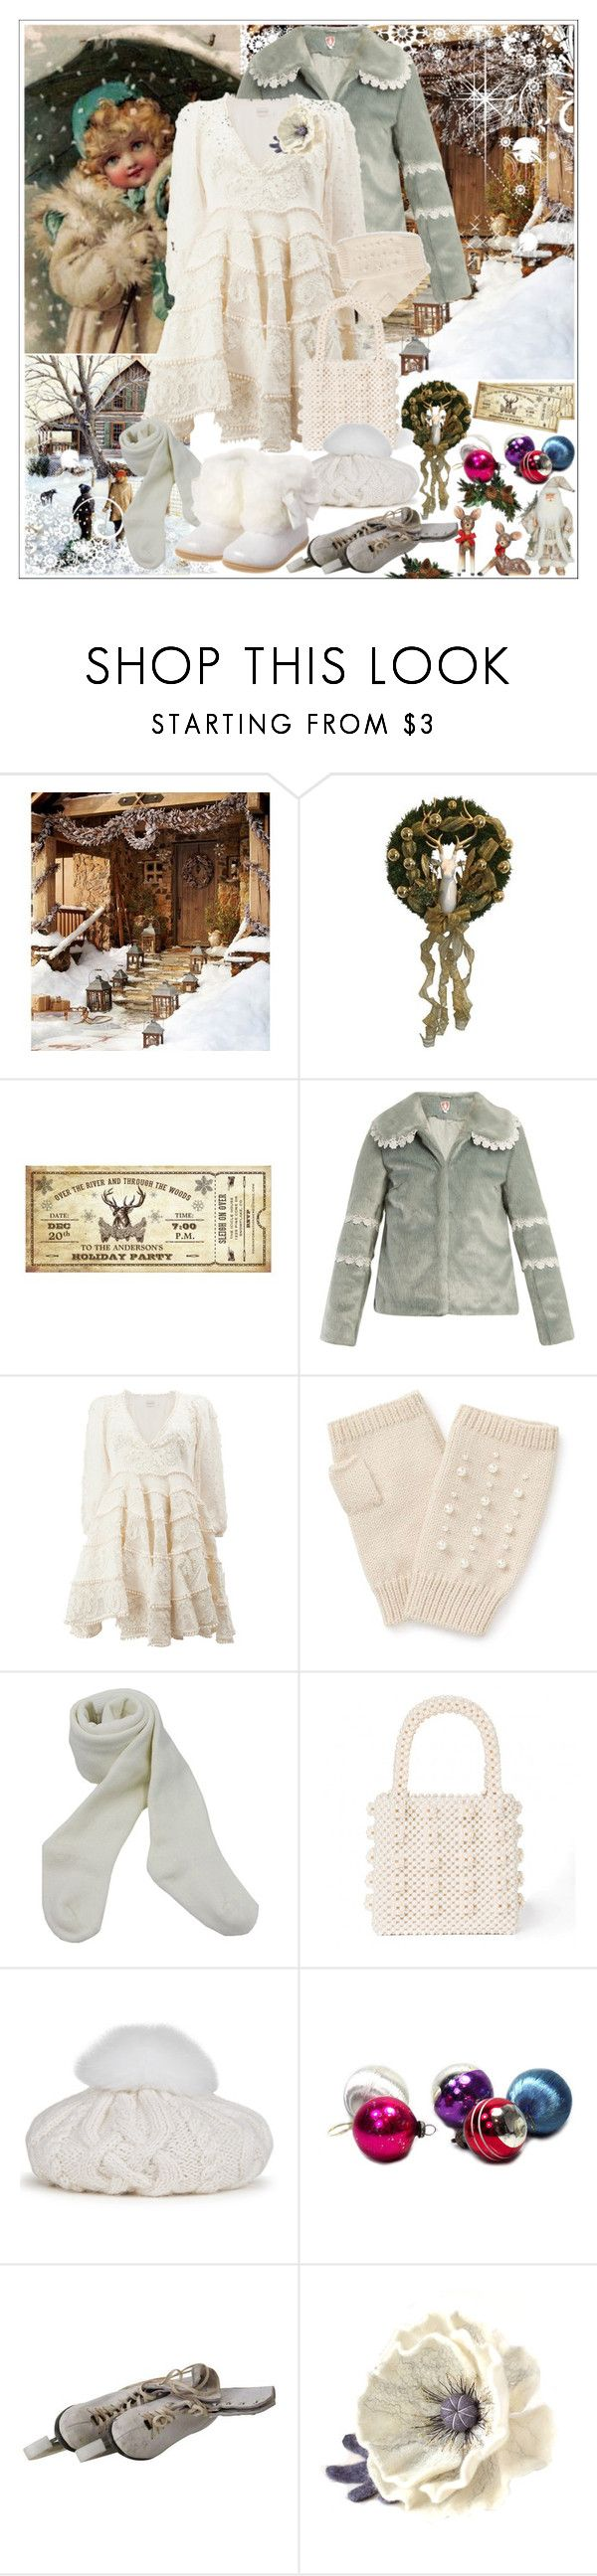 """""""Untitled #193"""" by shewalksinsilence ❤ liked on Polyvore featuring Pottery Barn, Shrimps, Zimmermann, Miss Selfridge, Eugenia Kim, White Ice, vintage and Christmas"""